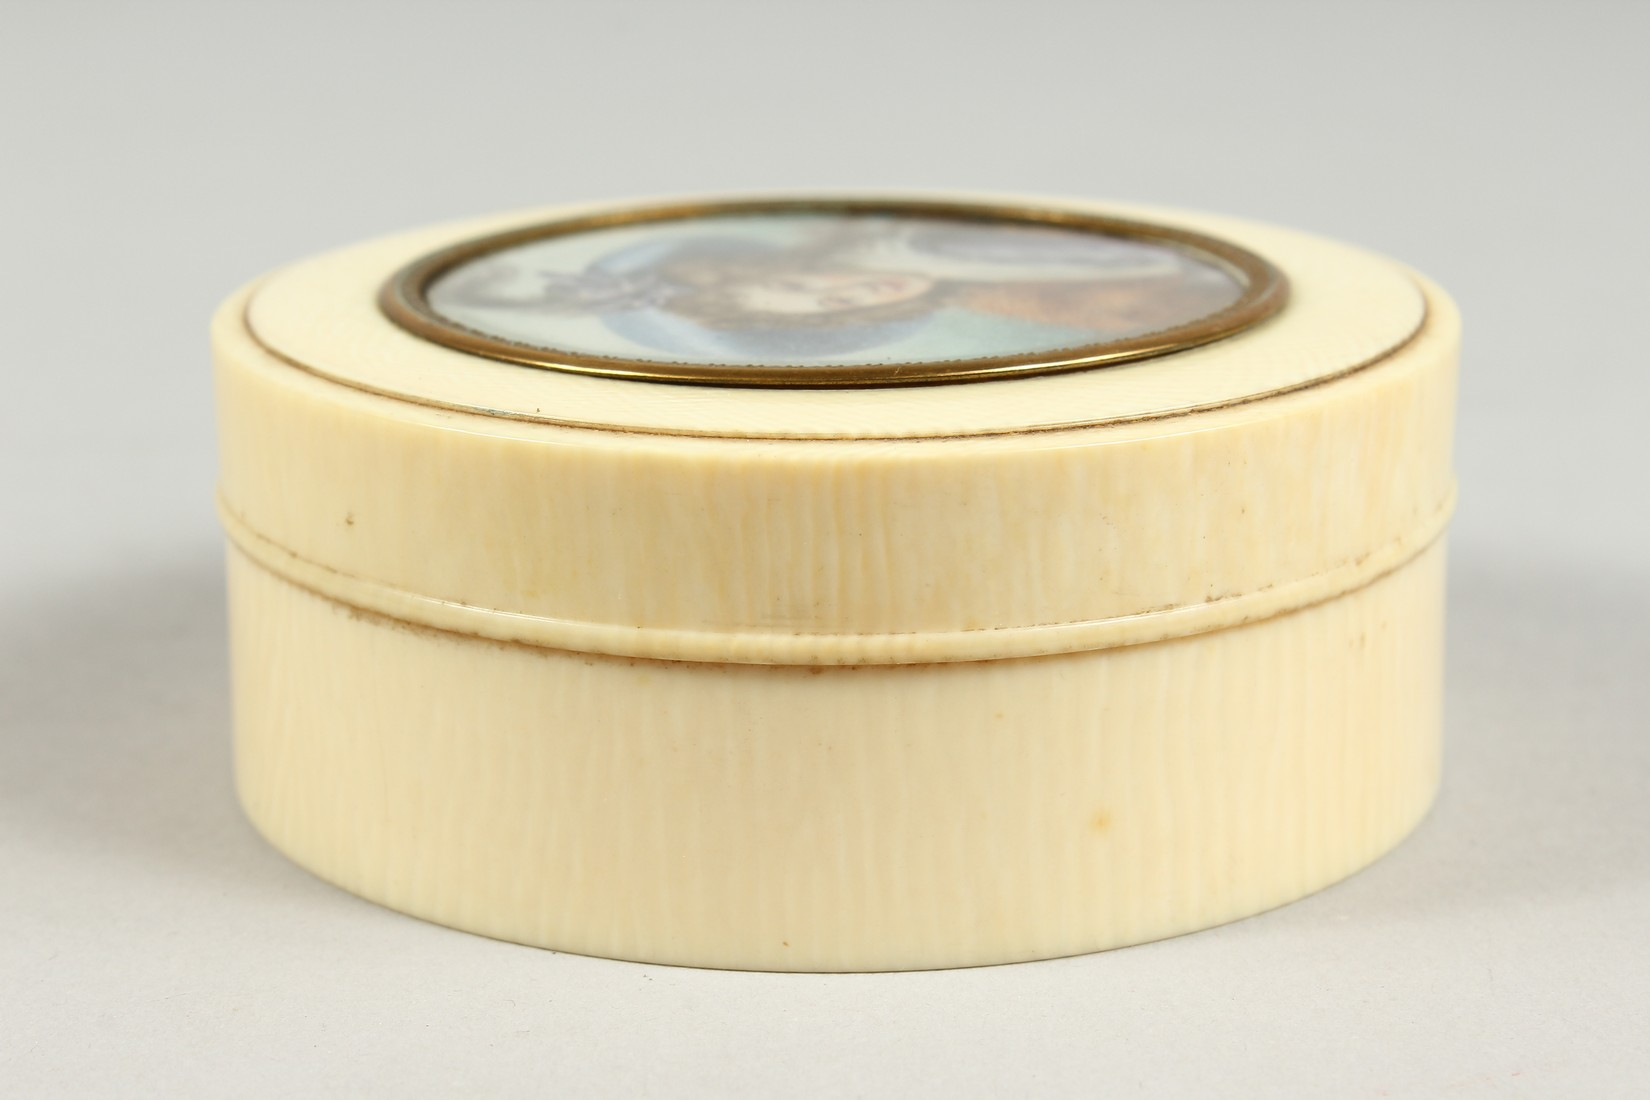 A GEORGIAN IVORY CIRCULAR BOX, the top painted with a portrait of a young lady in a plumed hat. 3ins - Image 6 of 8